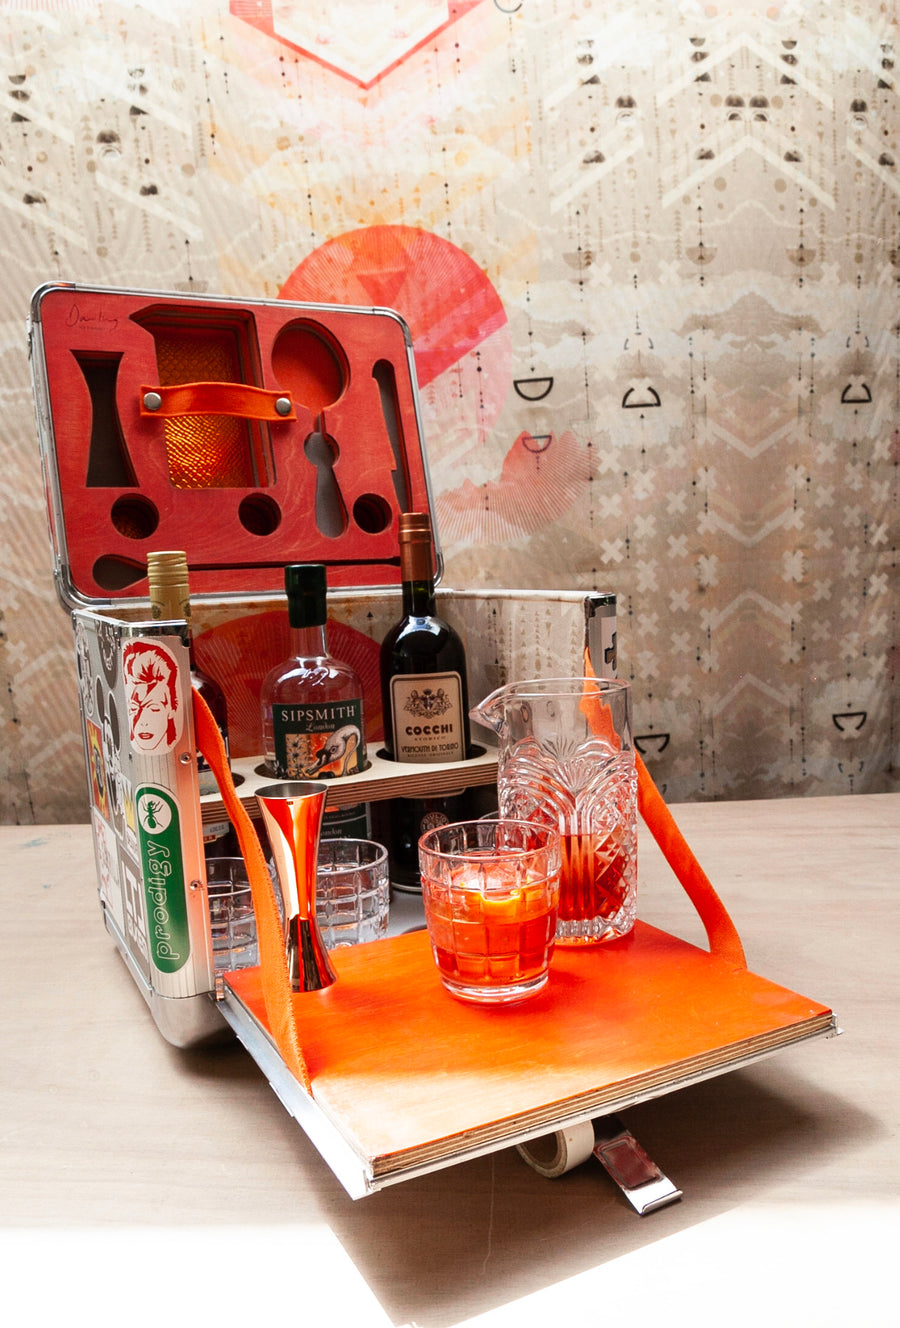 Sophie Darling Vinyl Box Converted Into Negroni Cocktail Mixbox Love Print Interior